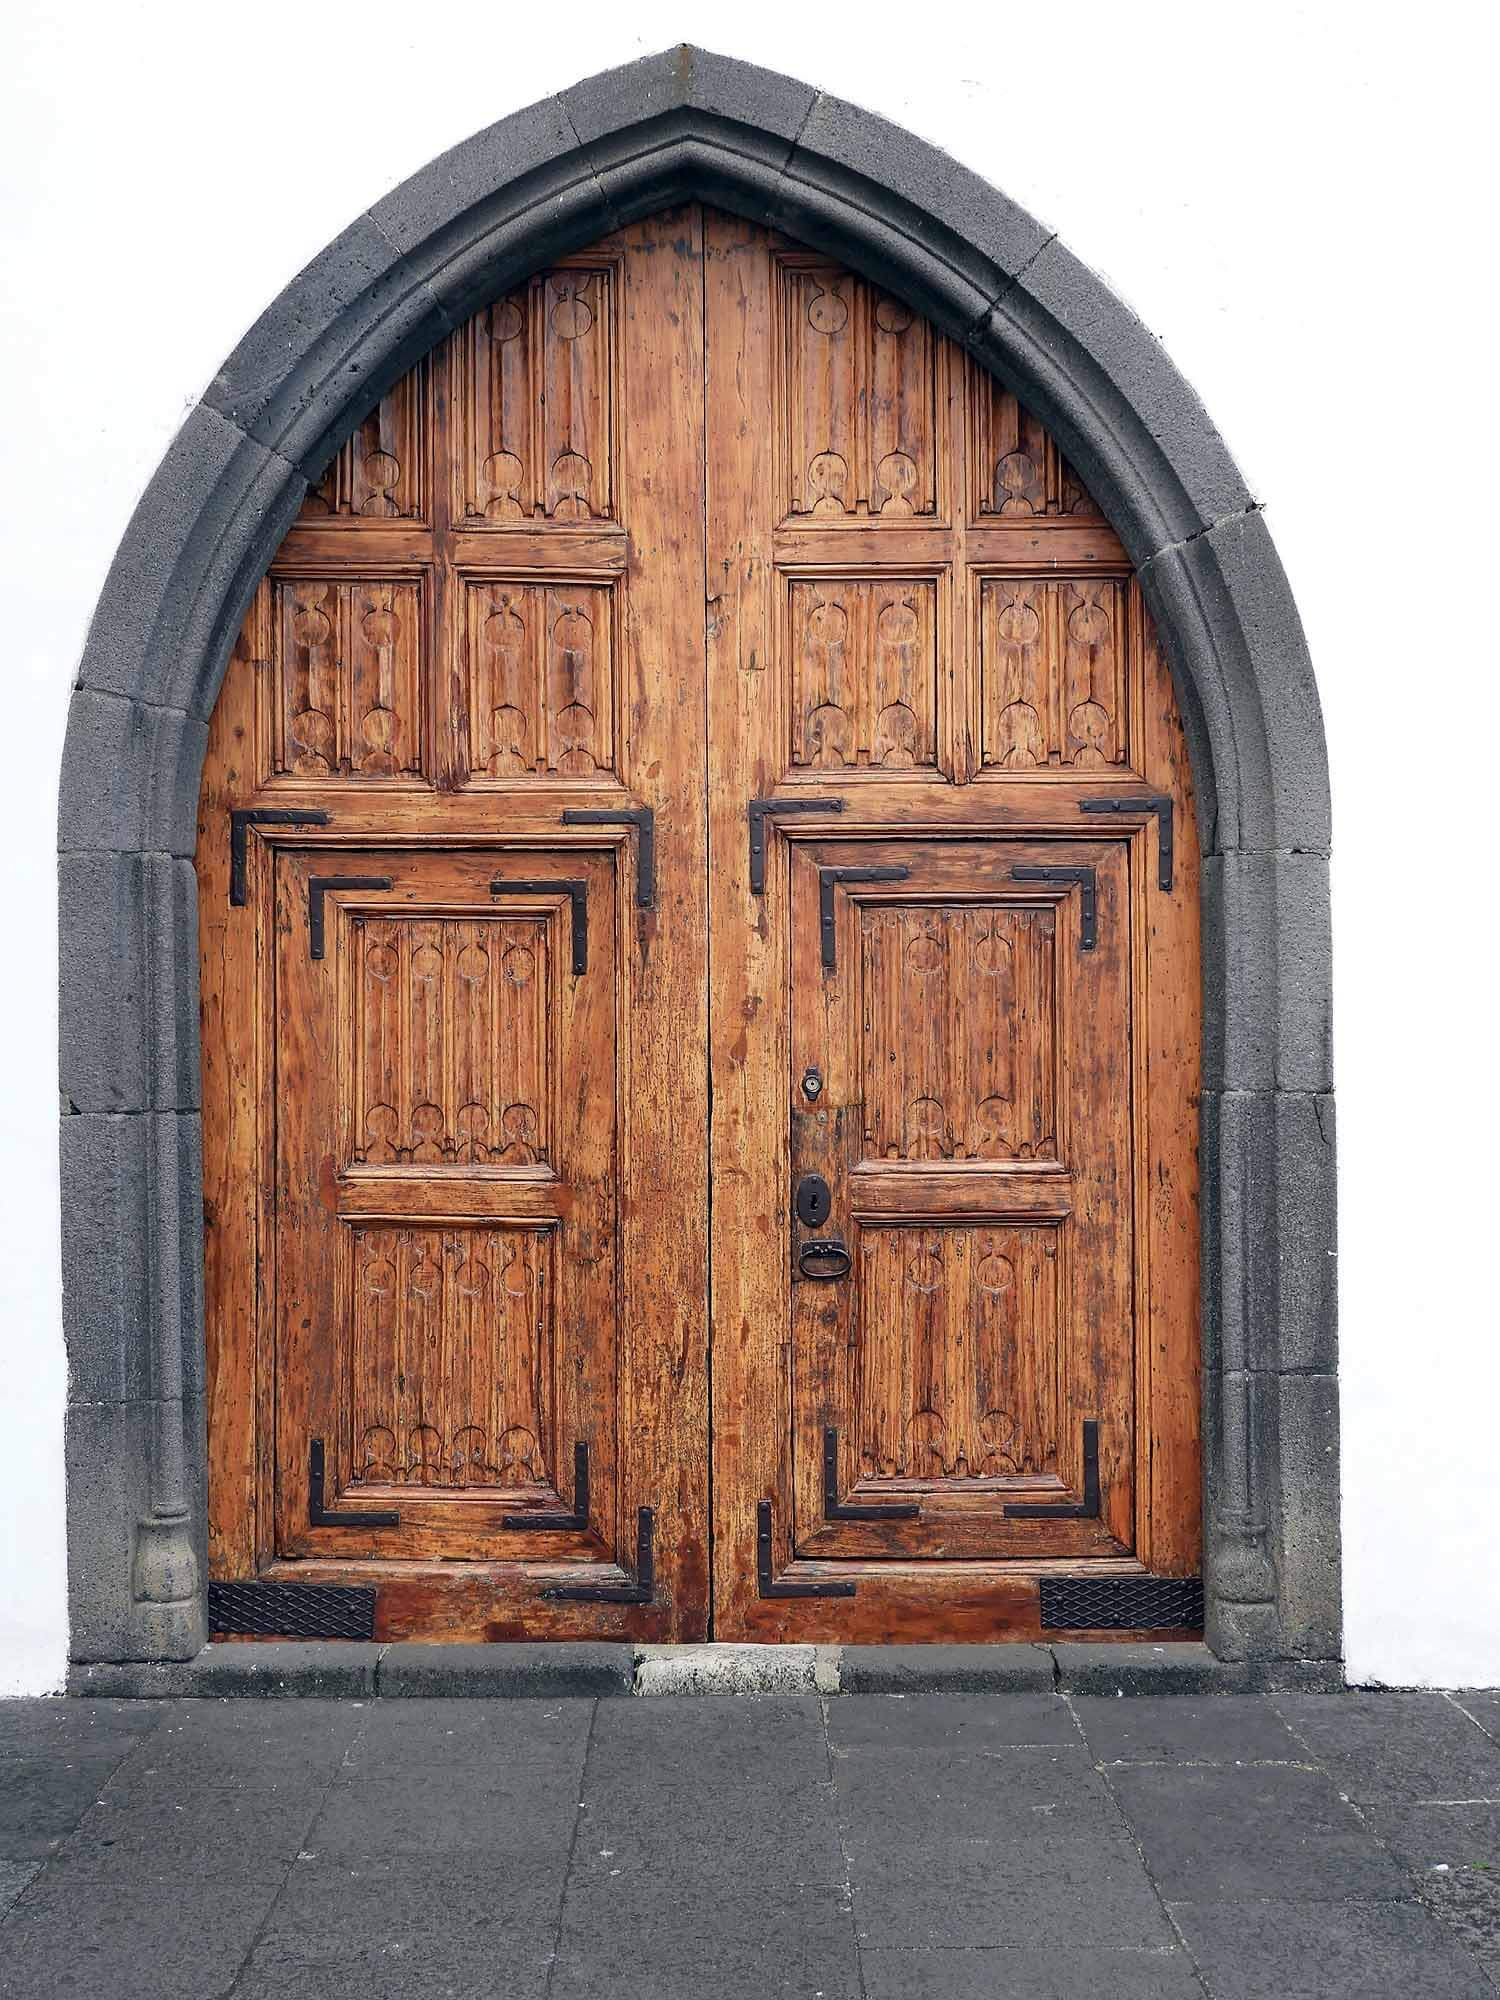 portugal-madeira-island-funchal-church-door.JPG